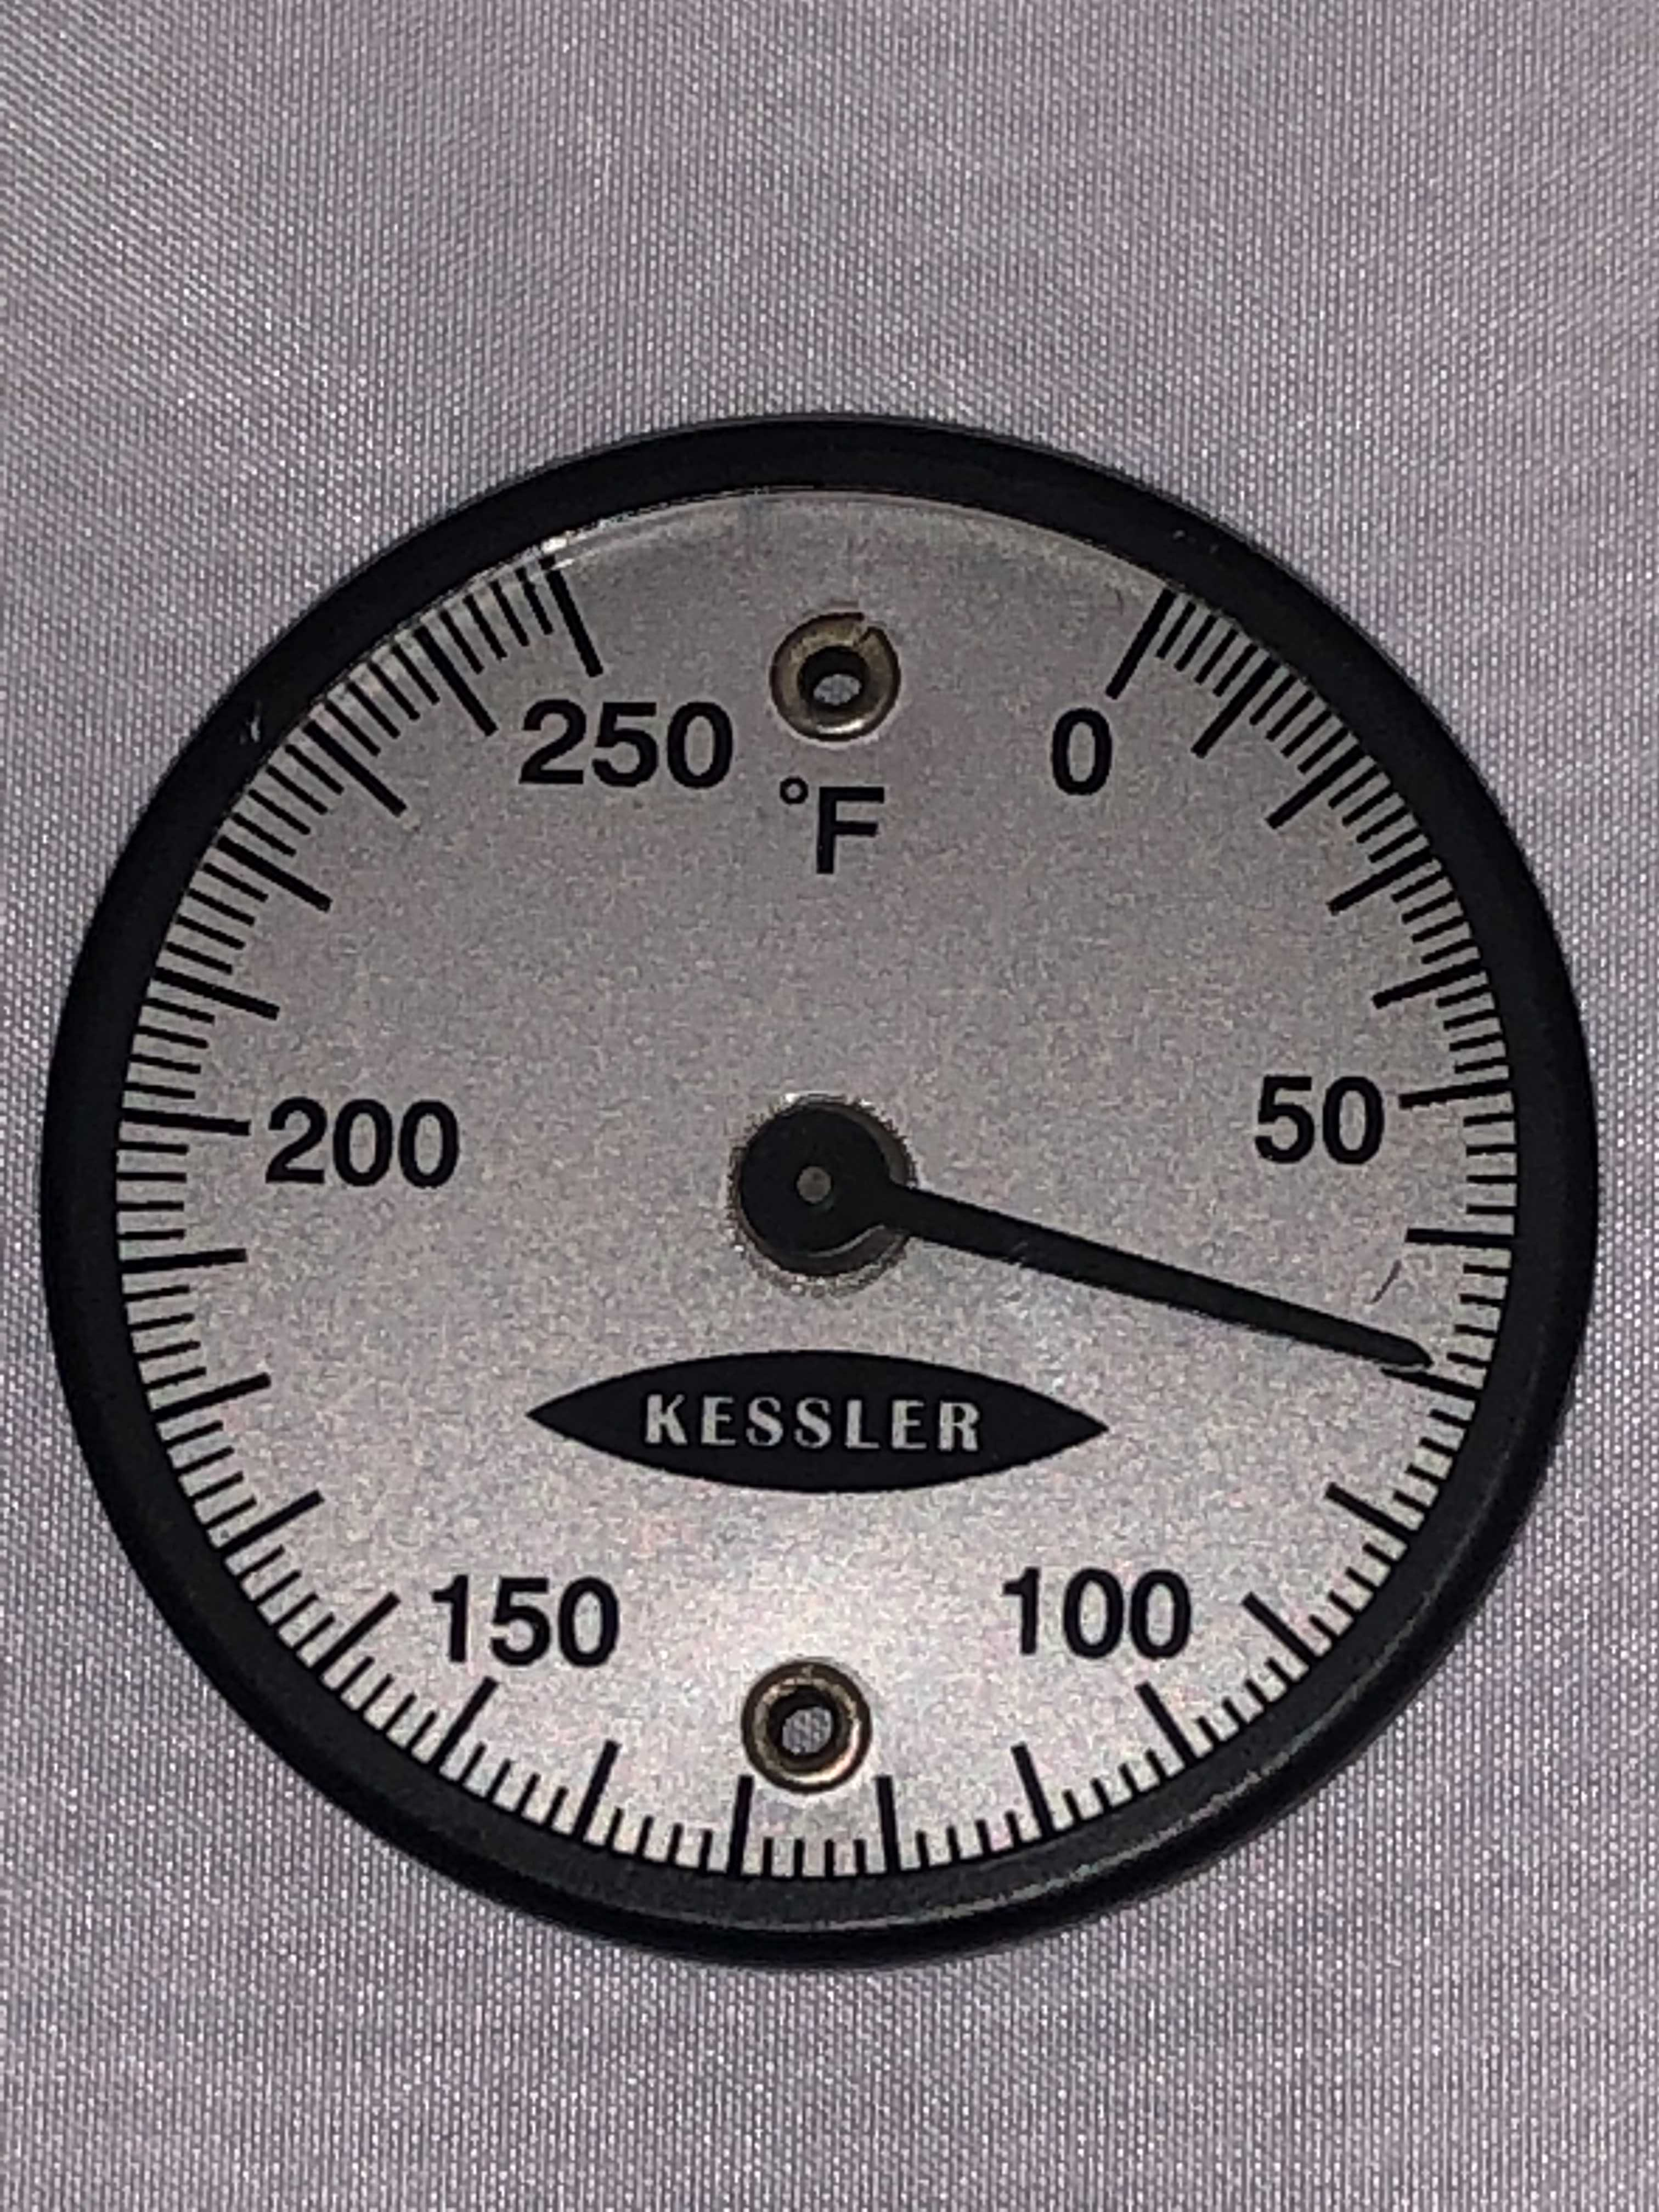 Surface Temperature Bimetal Dial Thermometers